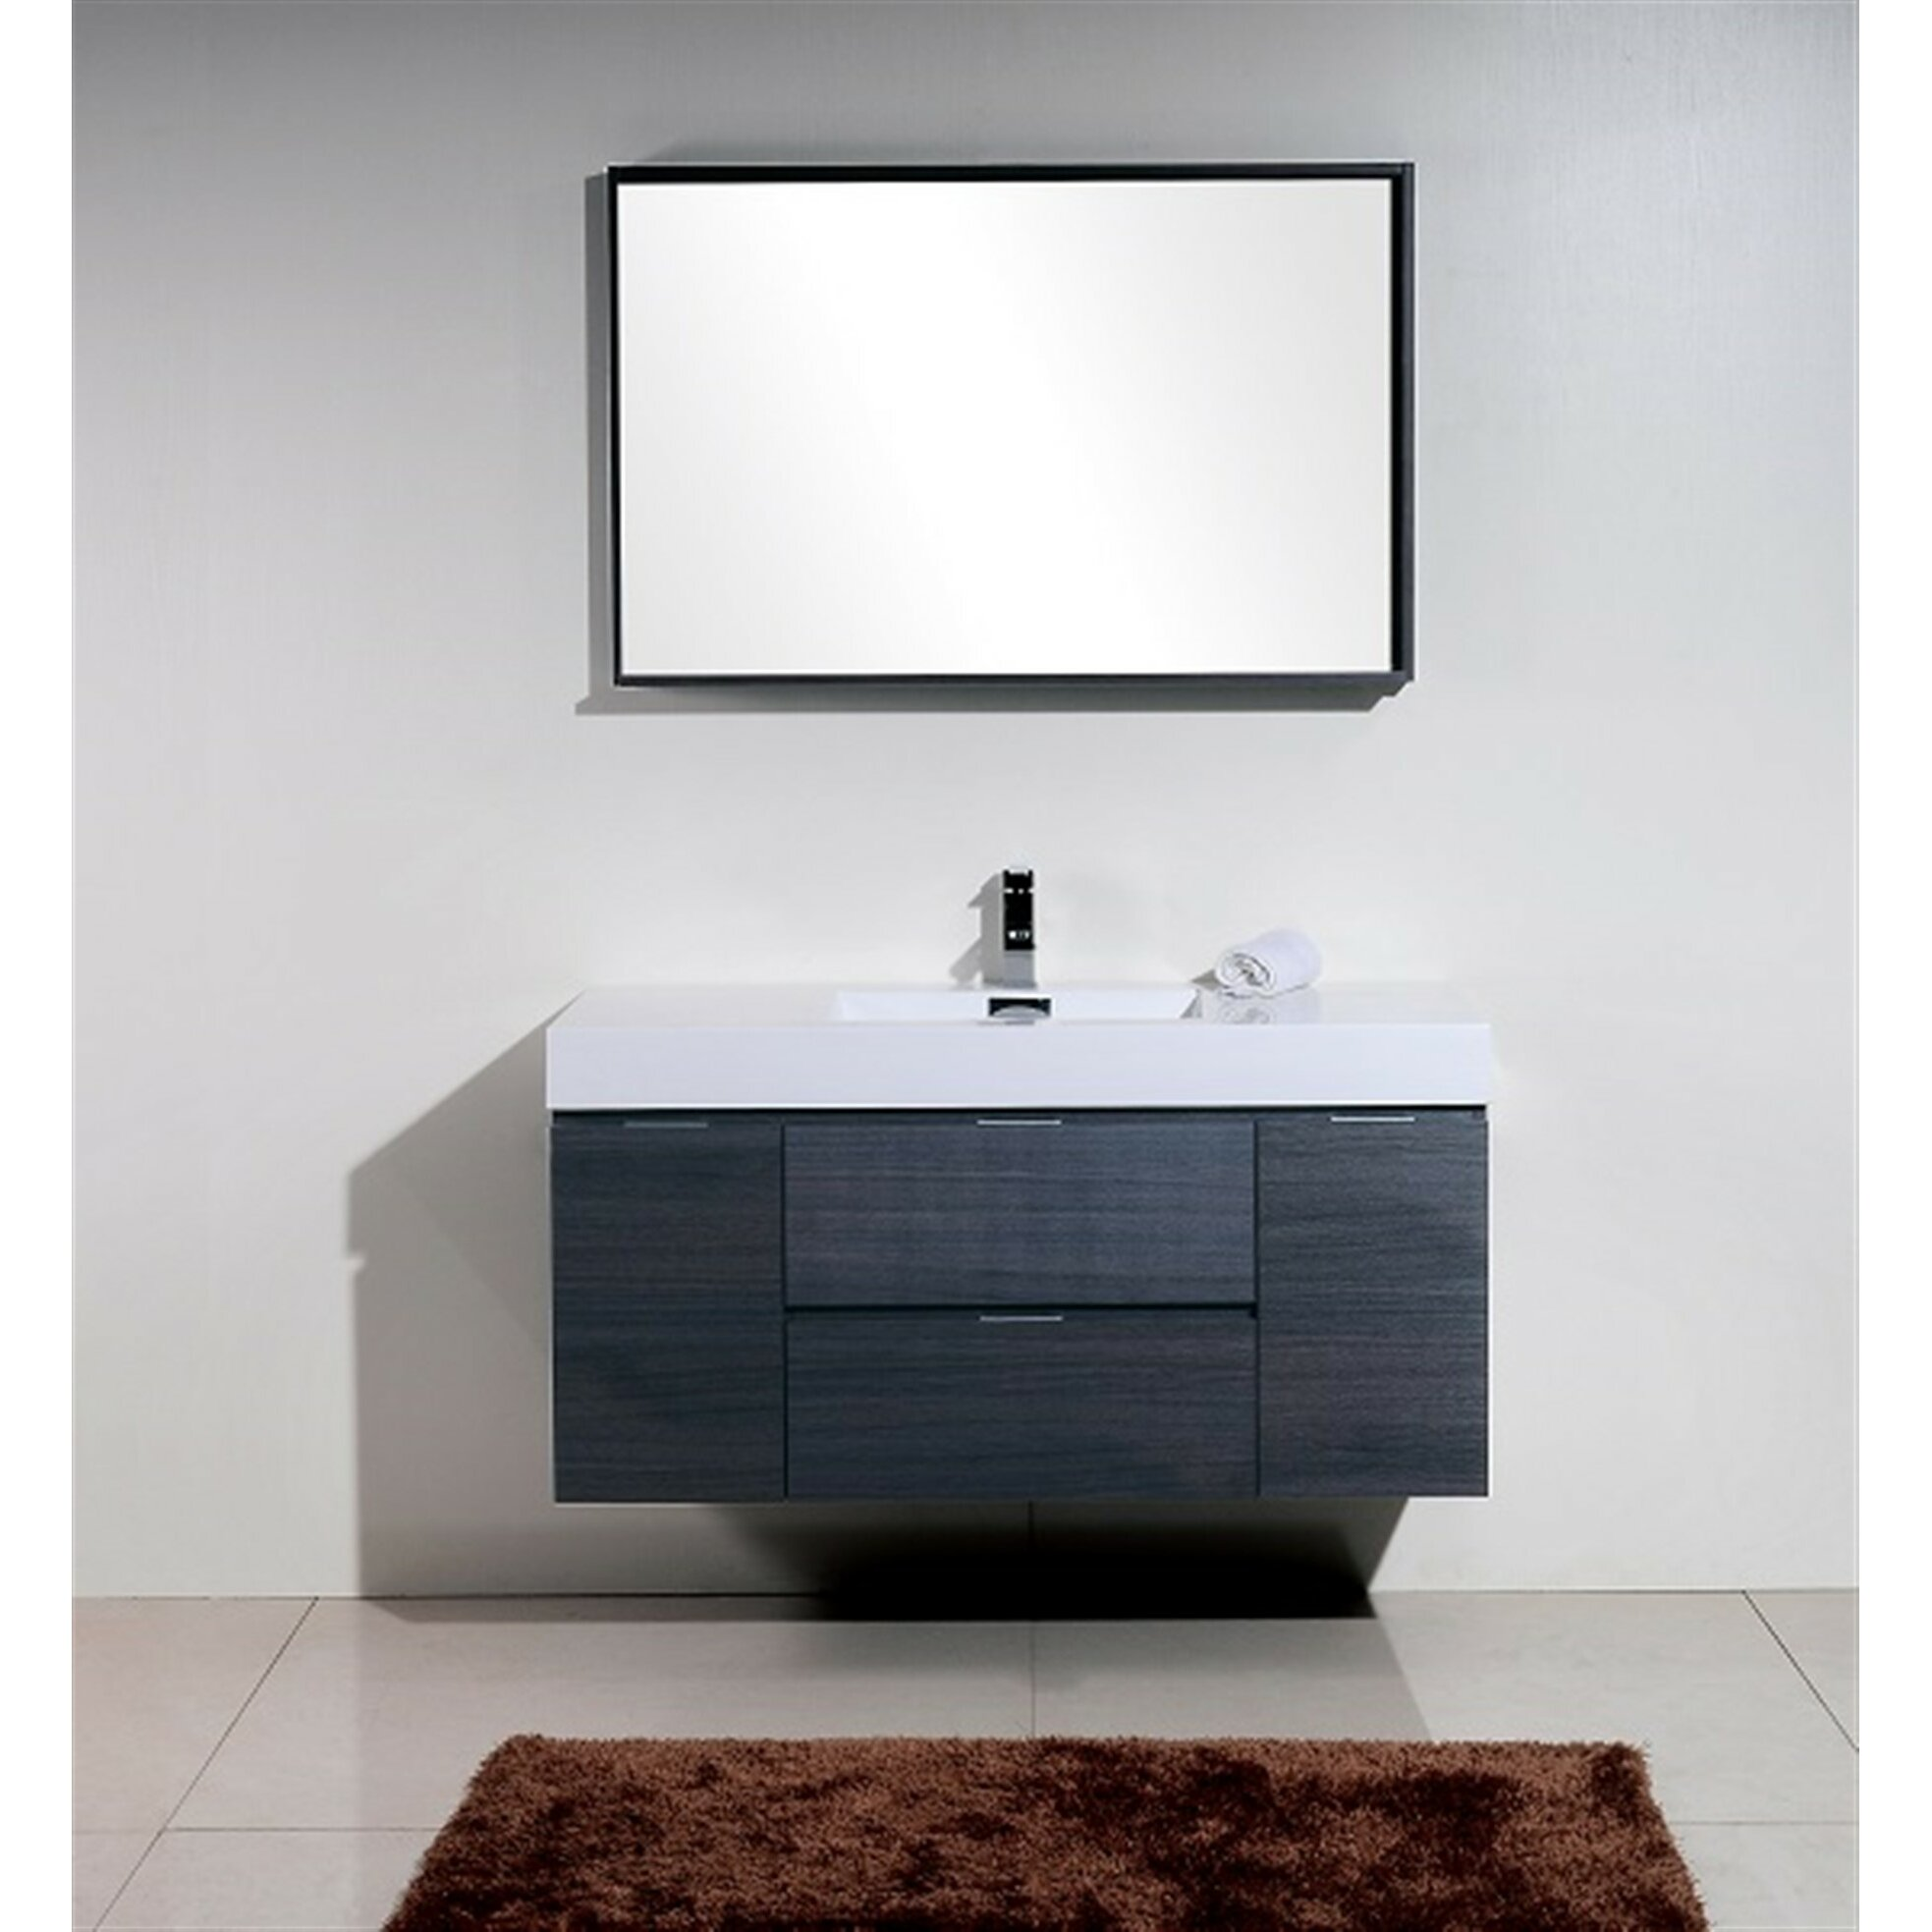 Bathroom Vanity Wall Mounted - Tenafly 48 single wall mount modern bathroom vanity set